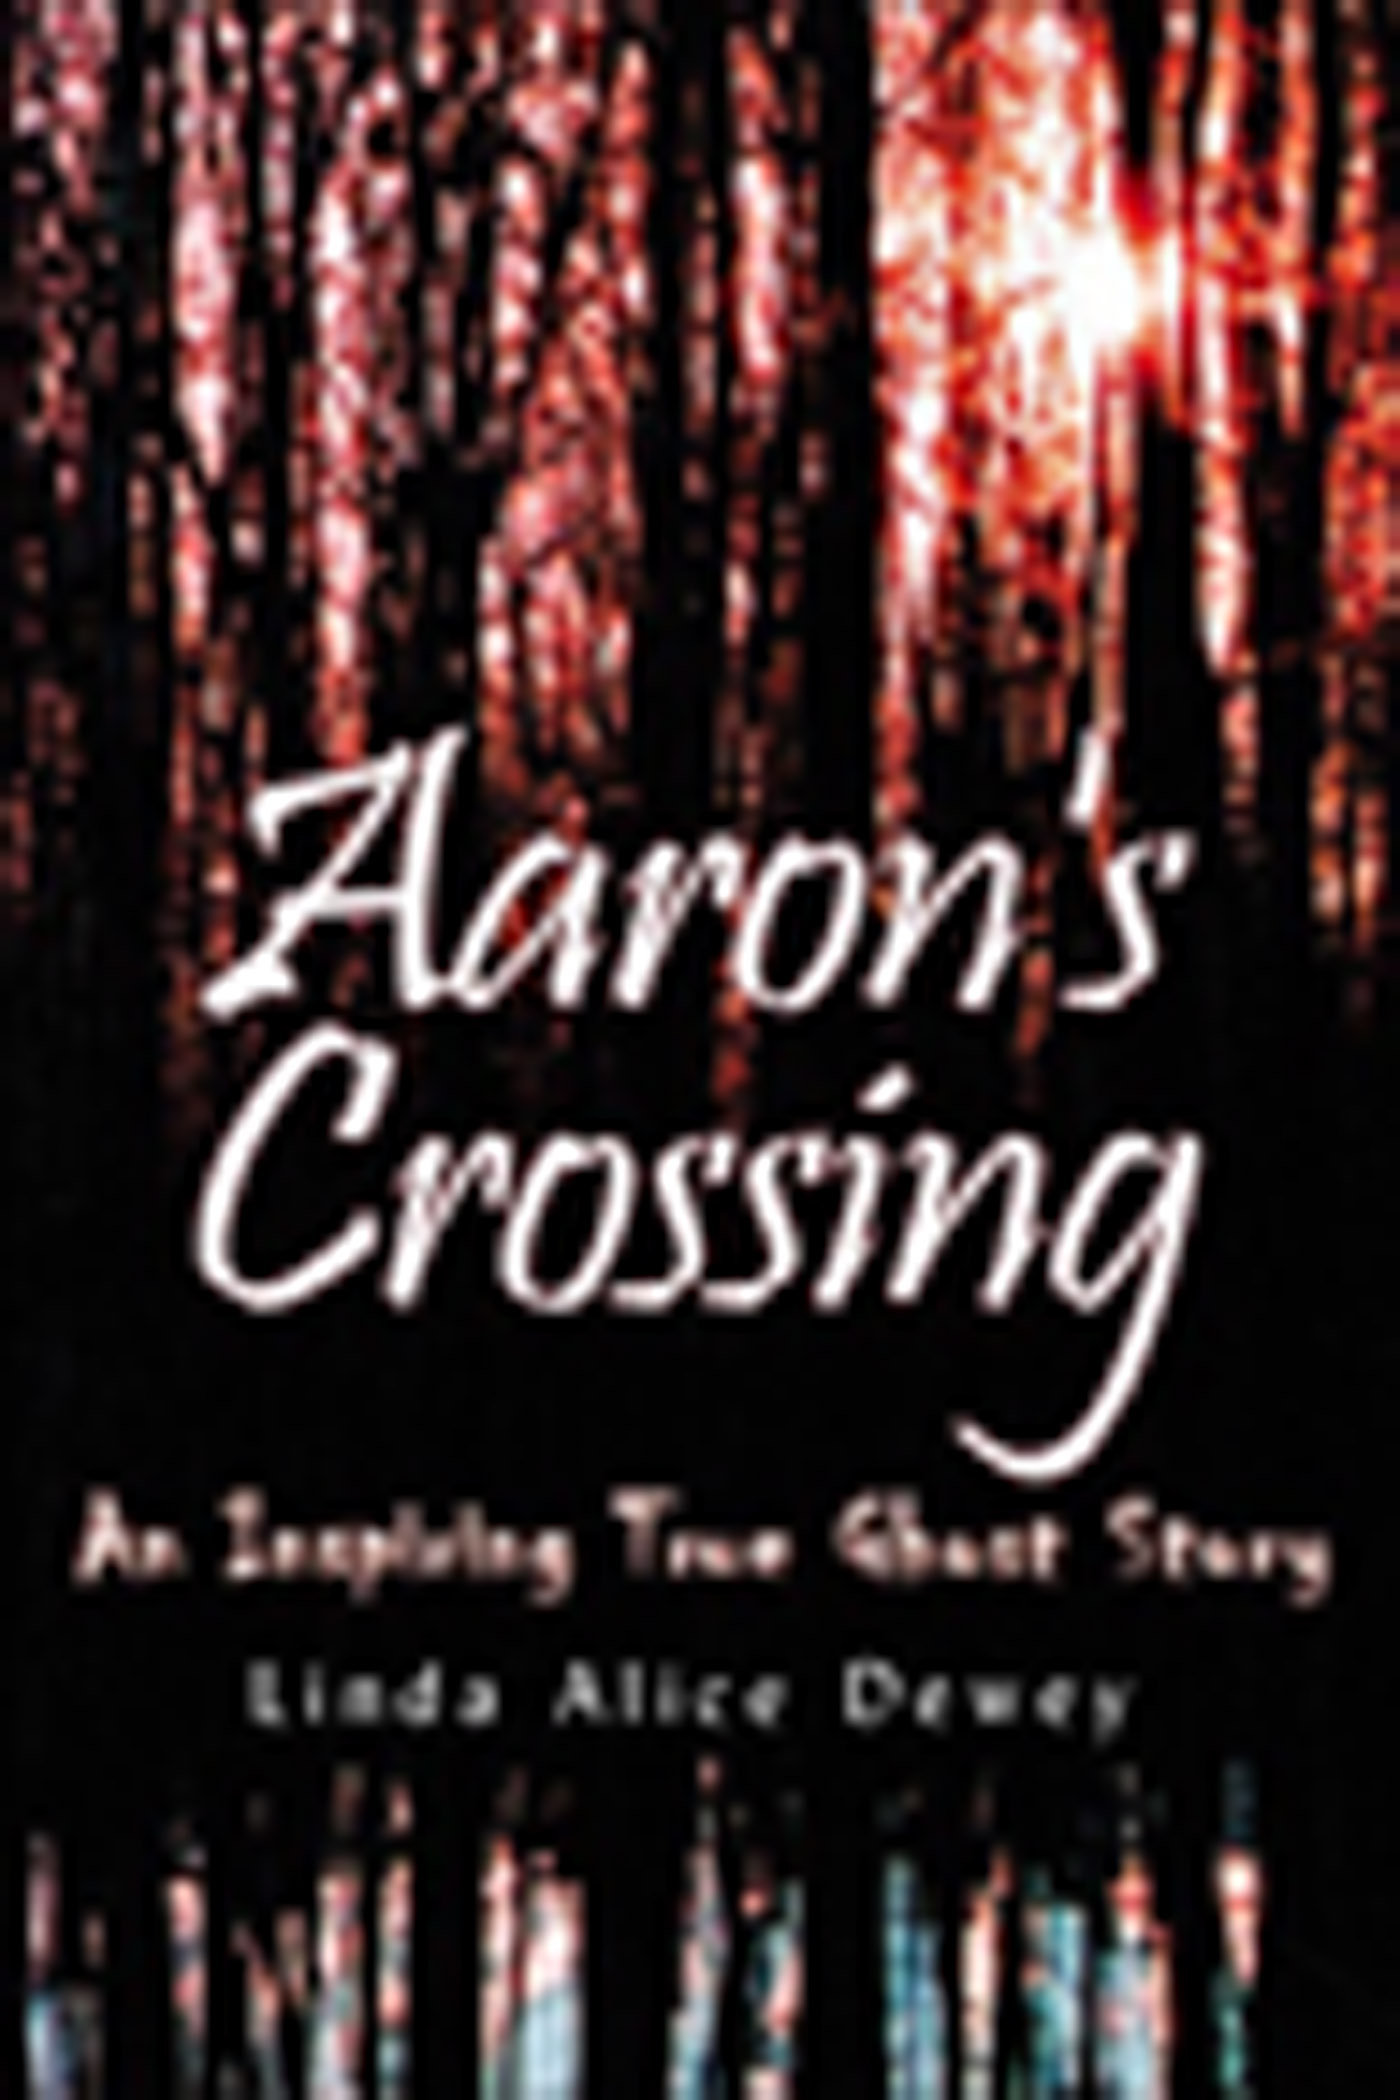 Aaron's Crossing